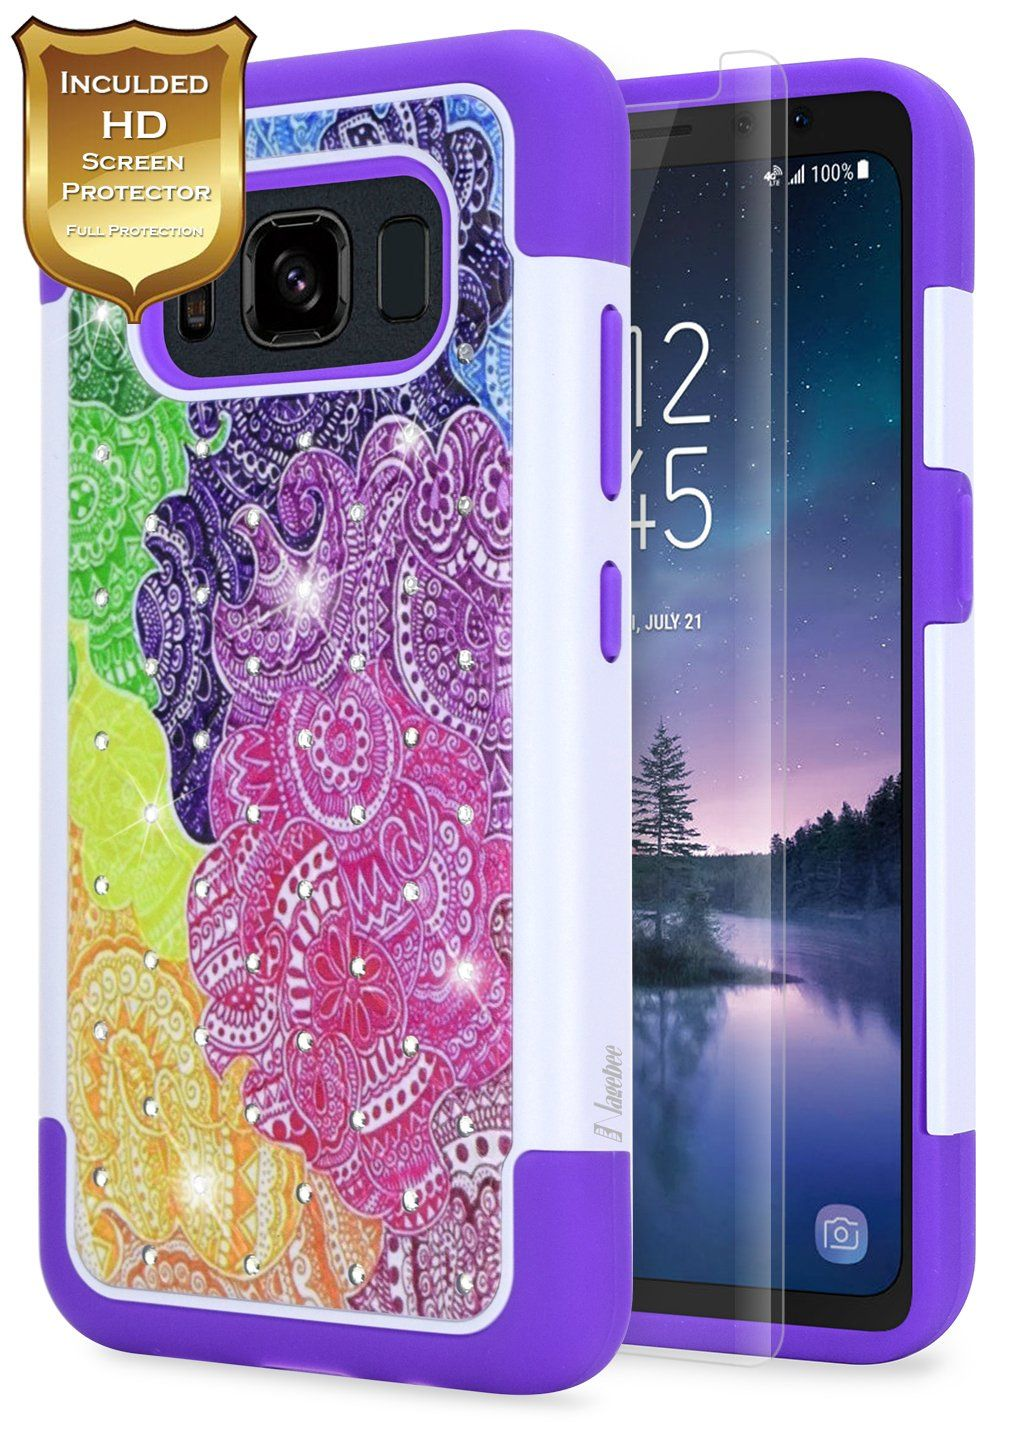 Galaxy S8 Active coqueRainbow Unicorn